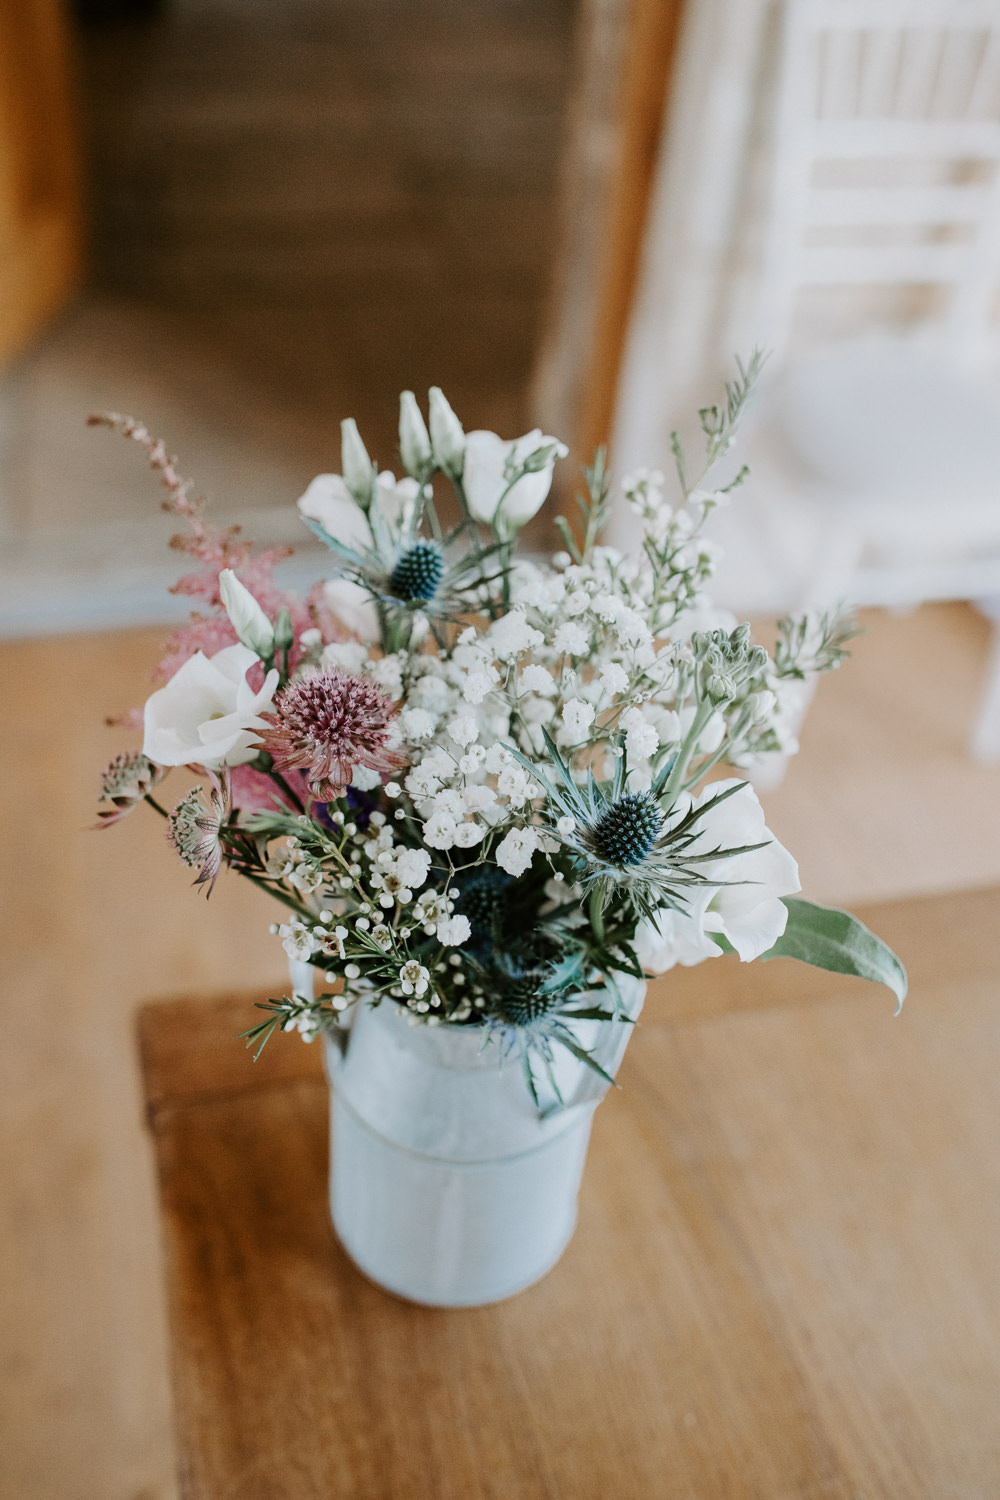 Flowers Watering Can Pink Grenery Thisle Astilbe Barn Upcote Wedding Siobhan Beales Photography